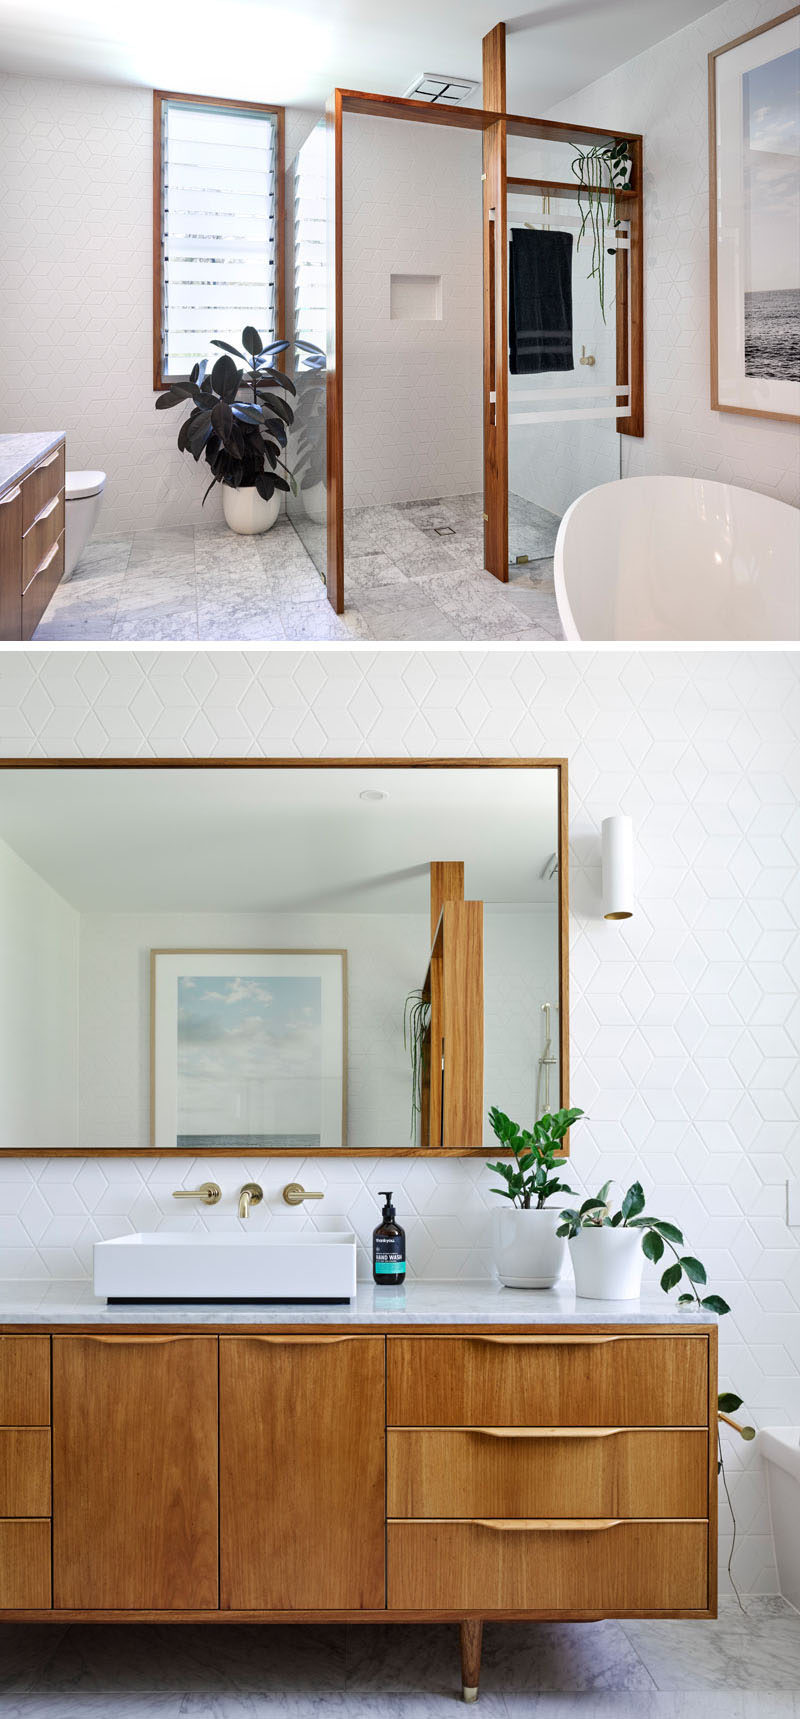 In this modern bathroom, wood frames have been used to provide support for the glass shower surround. Geometric white tiles on the walls add a slight texture, while the wood vanity ties in with the other wood elements for a contemporary bathroom design.